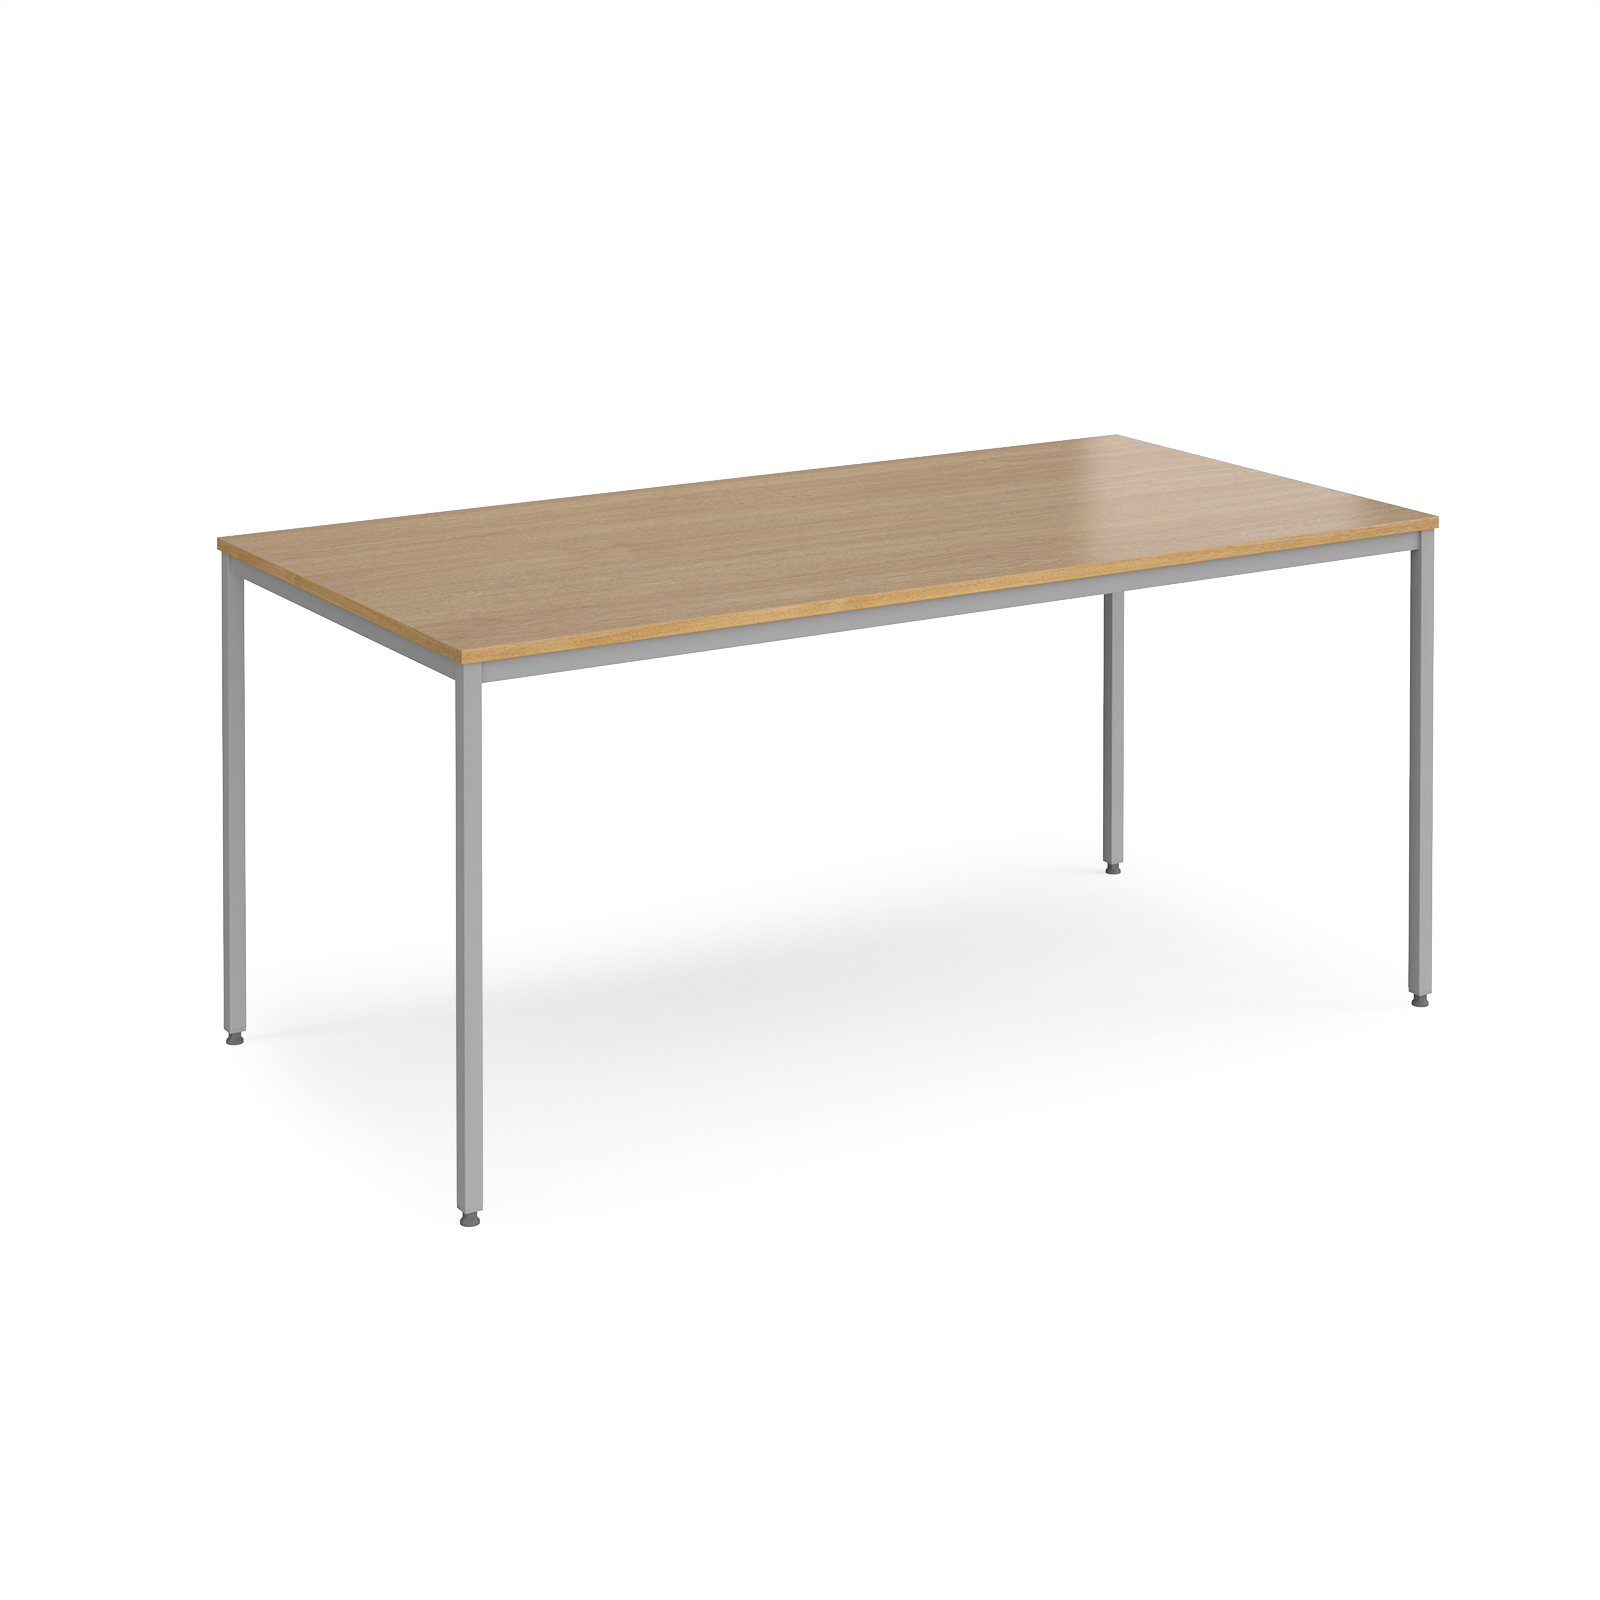 Rectangular flexi table with silver frame 1600mm x 800mm - oak